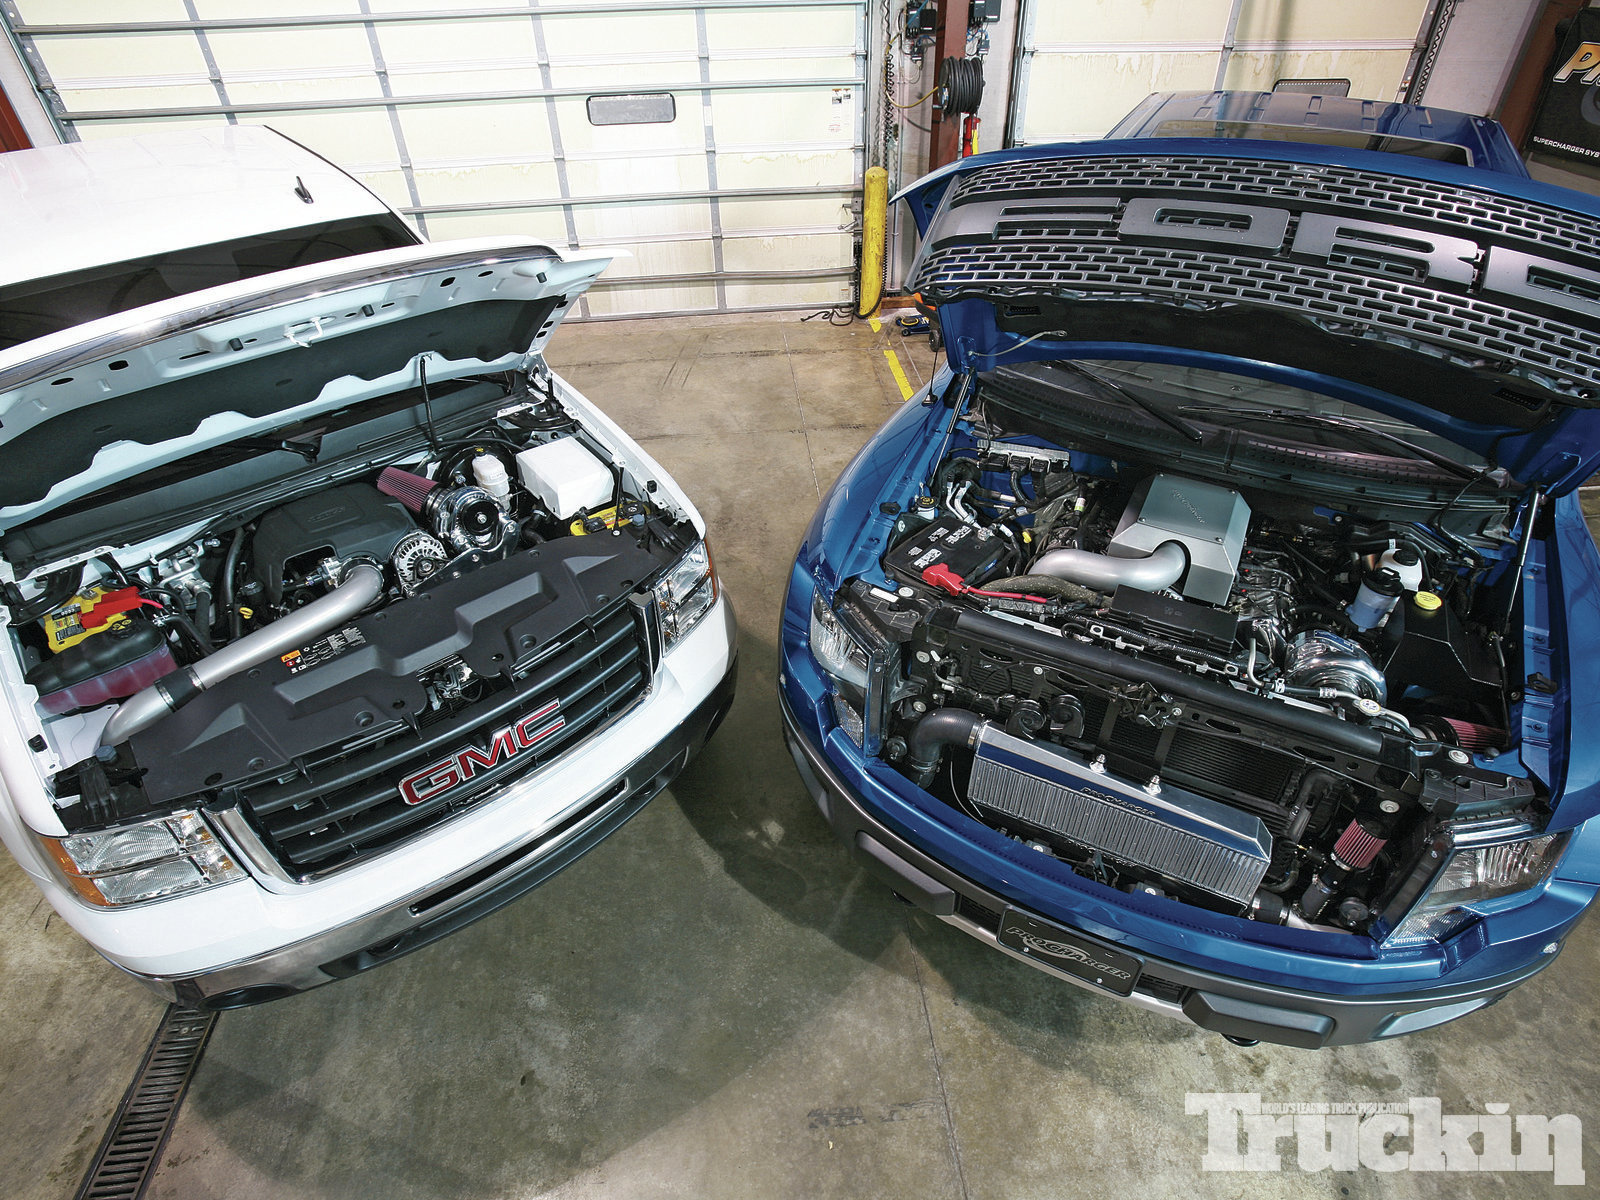 Boosted: Procharger's 6.2L Battle - Ford Raptor VS GMC Sierra